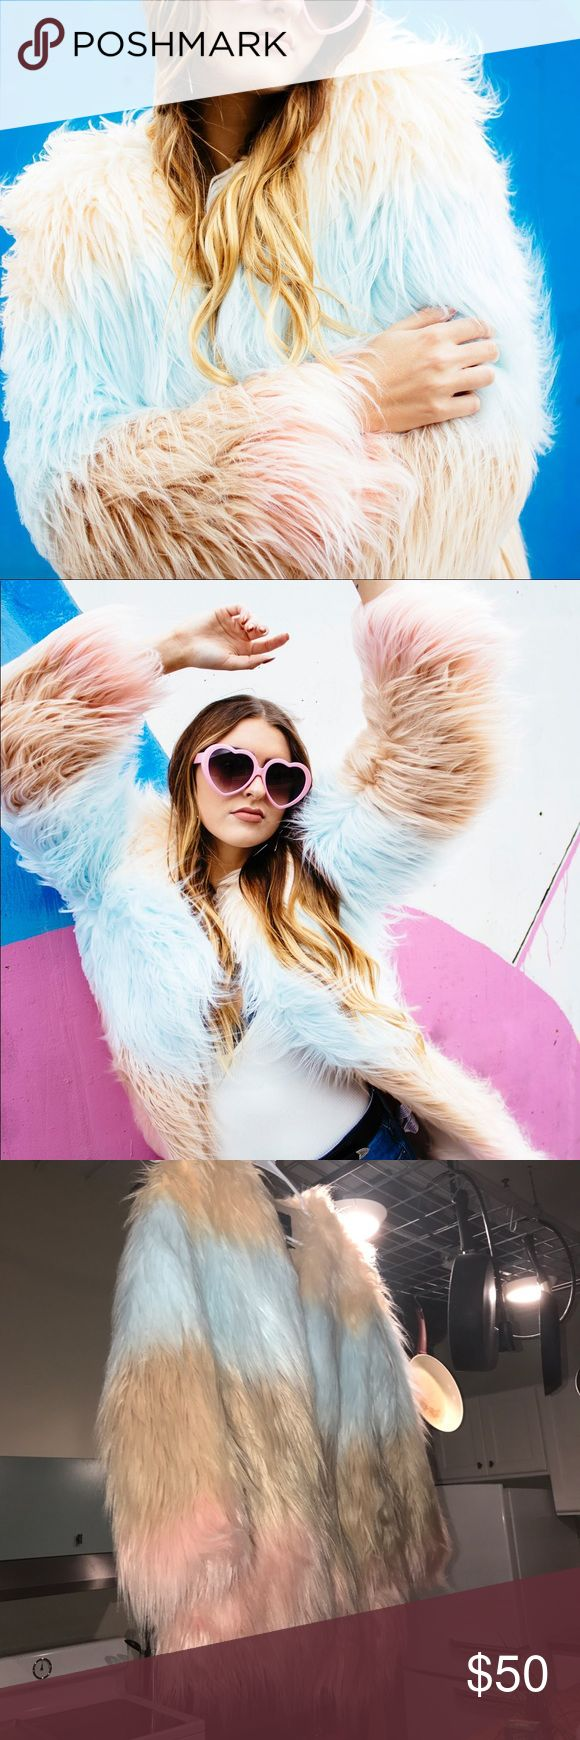 NWT Ombré Pastel Fur Shag Coat Only worn for photoshoot! New with tags. Warm and cozy. sooo cute! Forever 21 Jackets & Coats